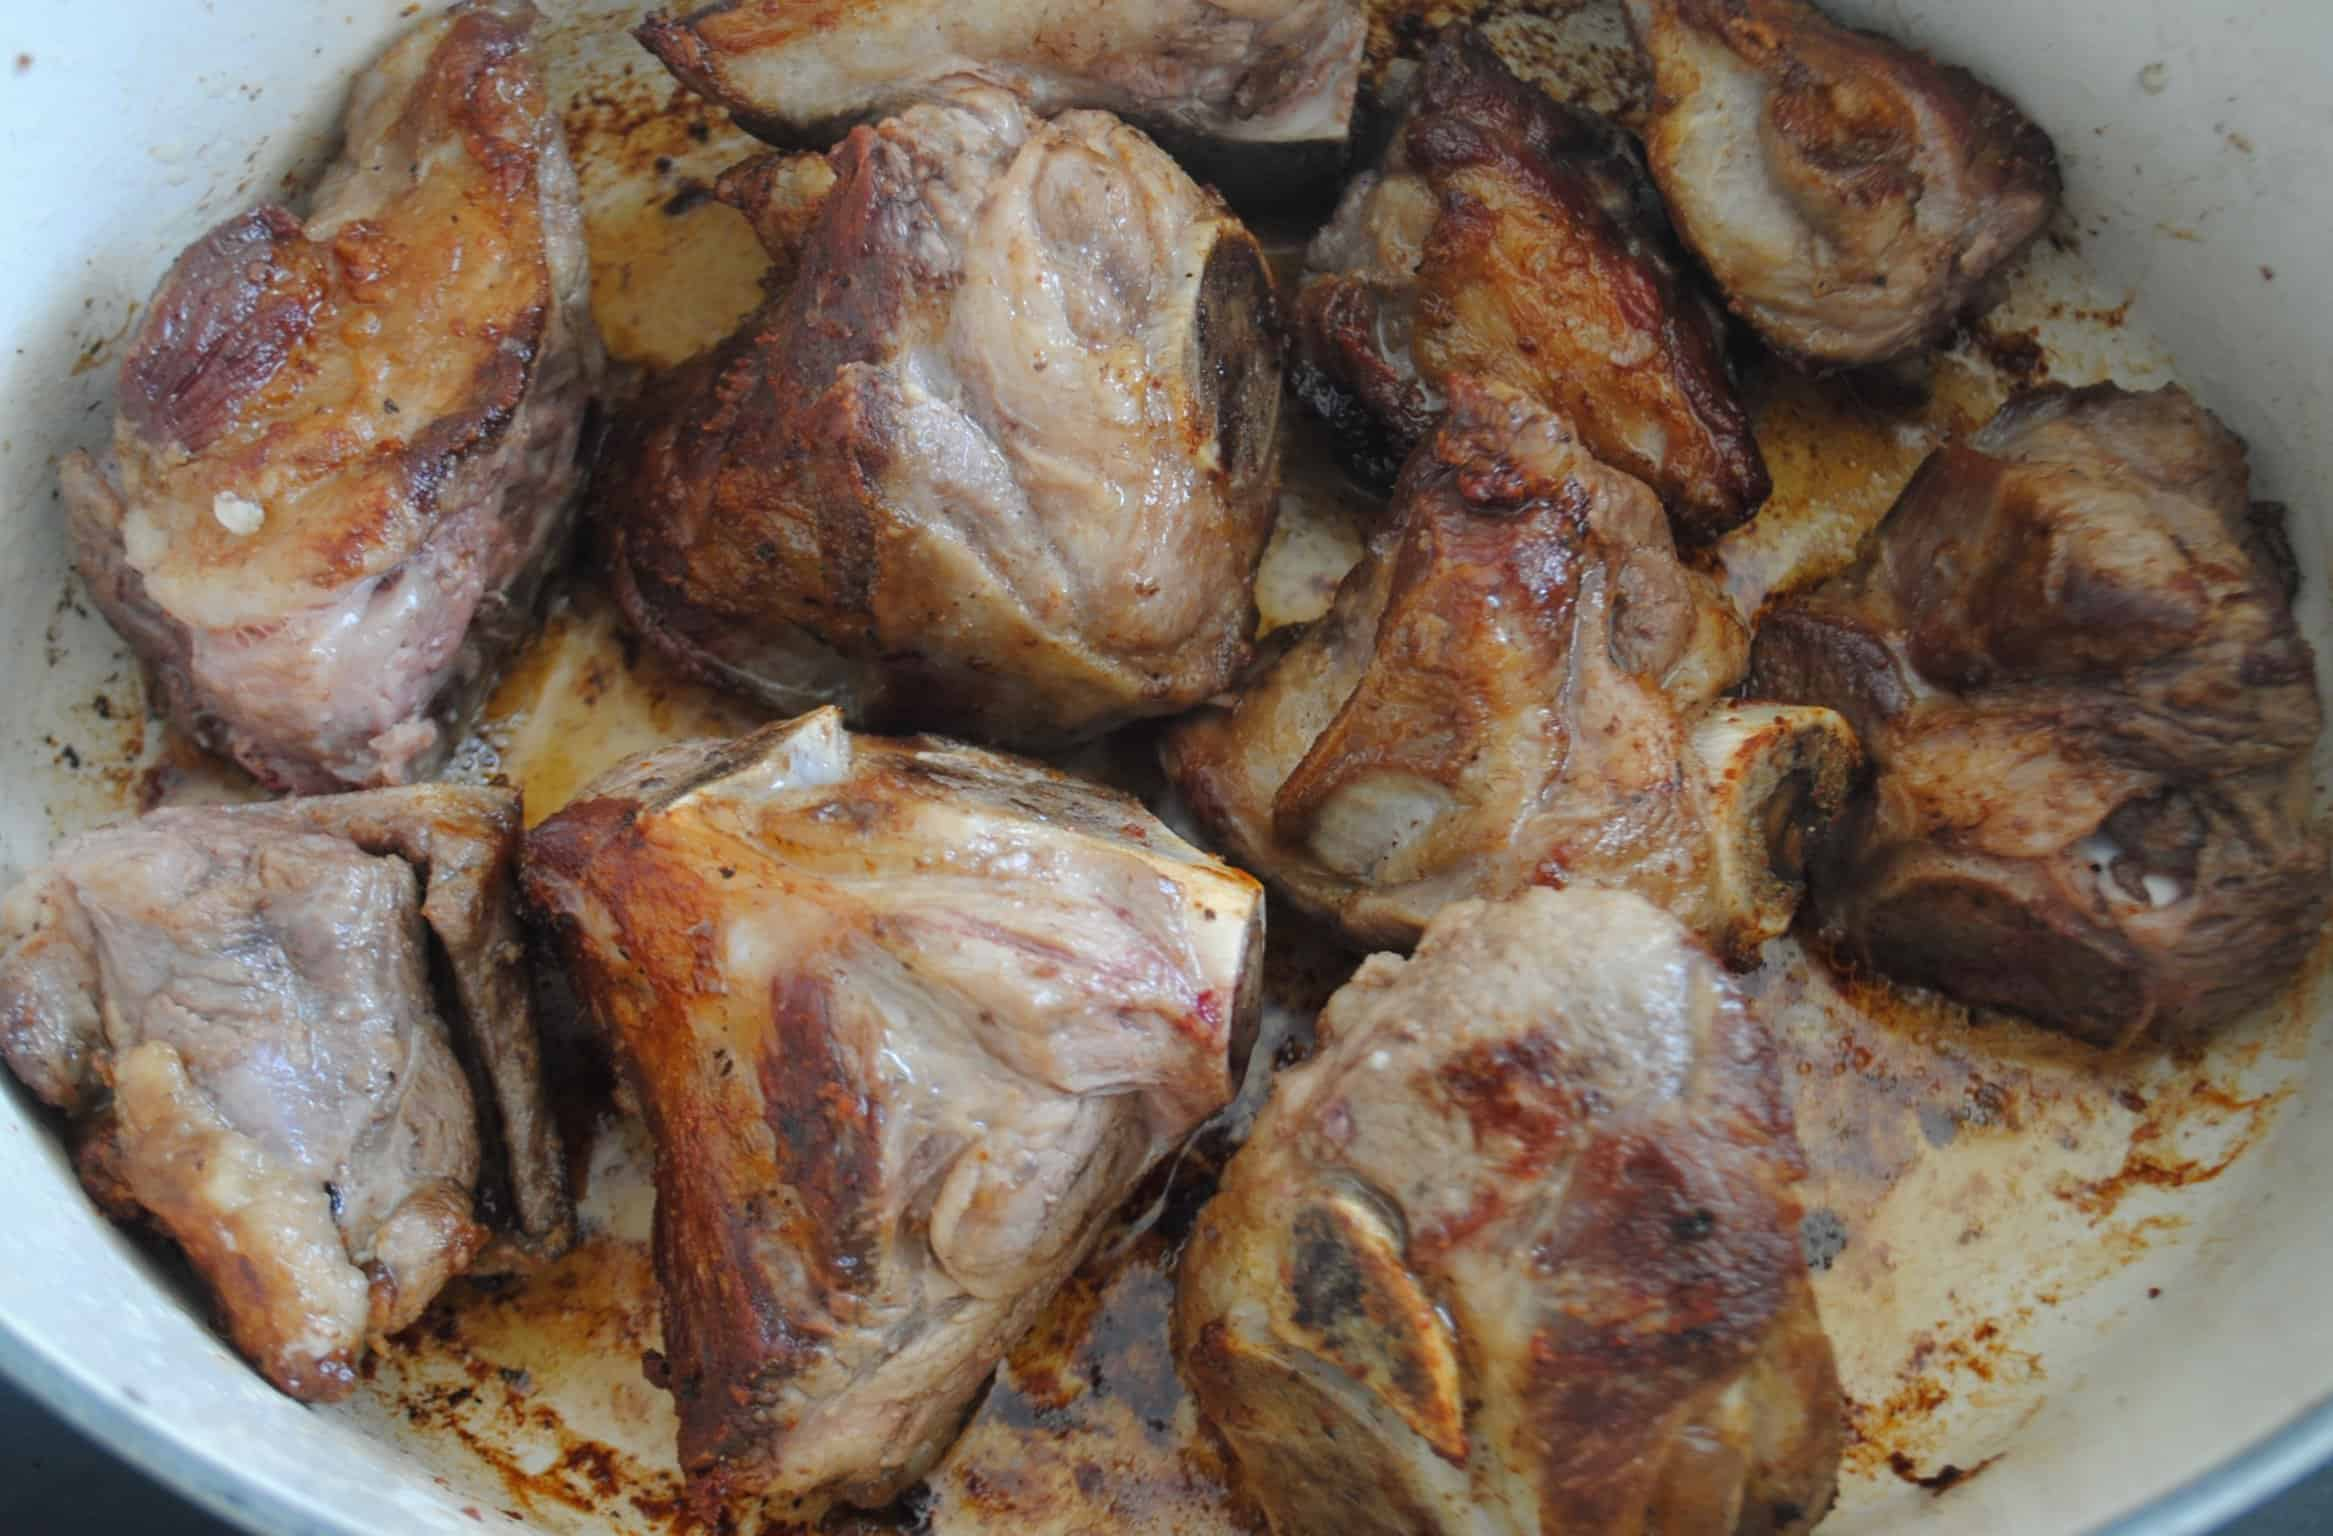 Lamb for Harira soup browning in large pot